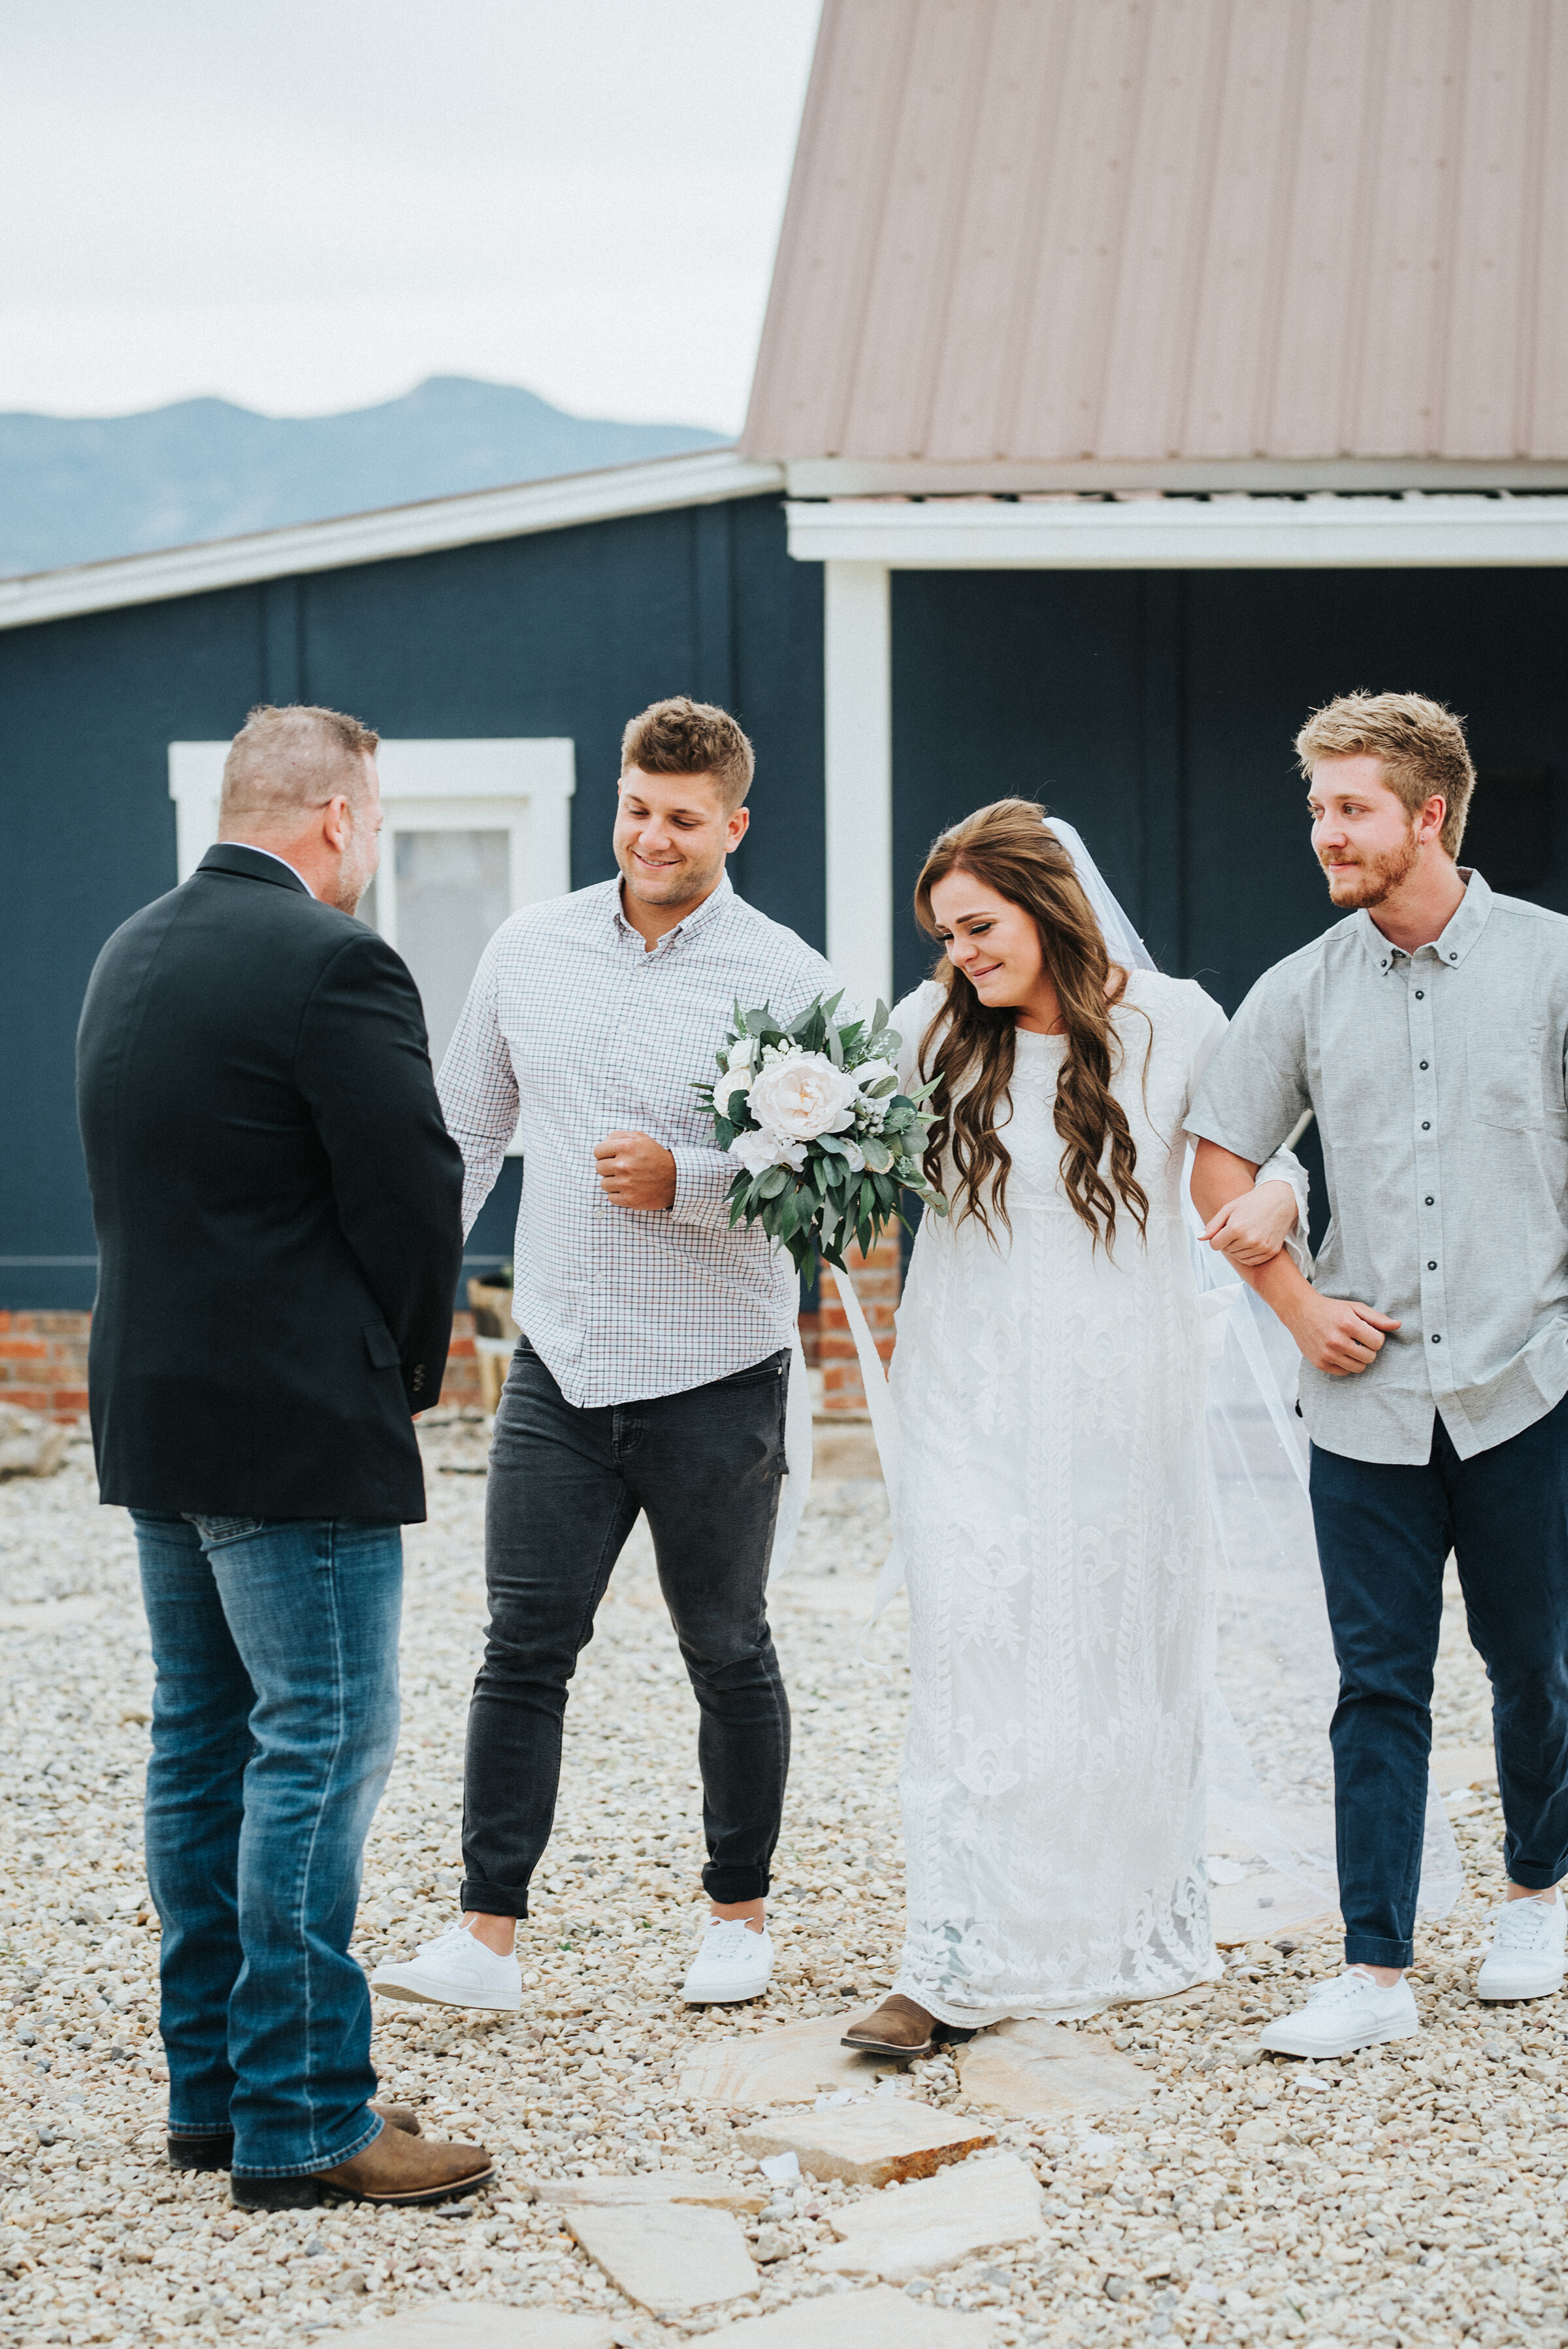 Walking down the aisle and being given away to the anxiously awaiting groom. The bride looked stunning and ready to marry the love of her life. photoshoot in Ephraim Utah photography wedding outdoor location western inspired rustic Airbnb photo aesthetic #ephraimutah #utahphotography #weddingdayphotography #gettingmarried #rusticwedding #utahwedding #westernstyle #weddingphotoshoot